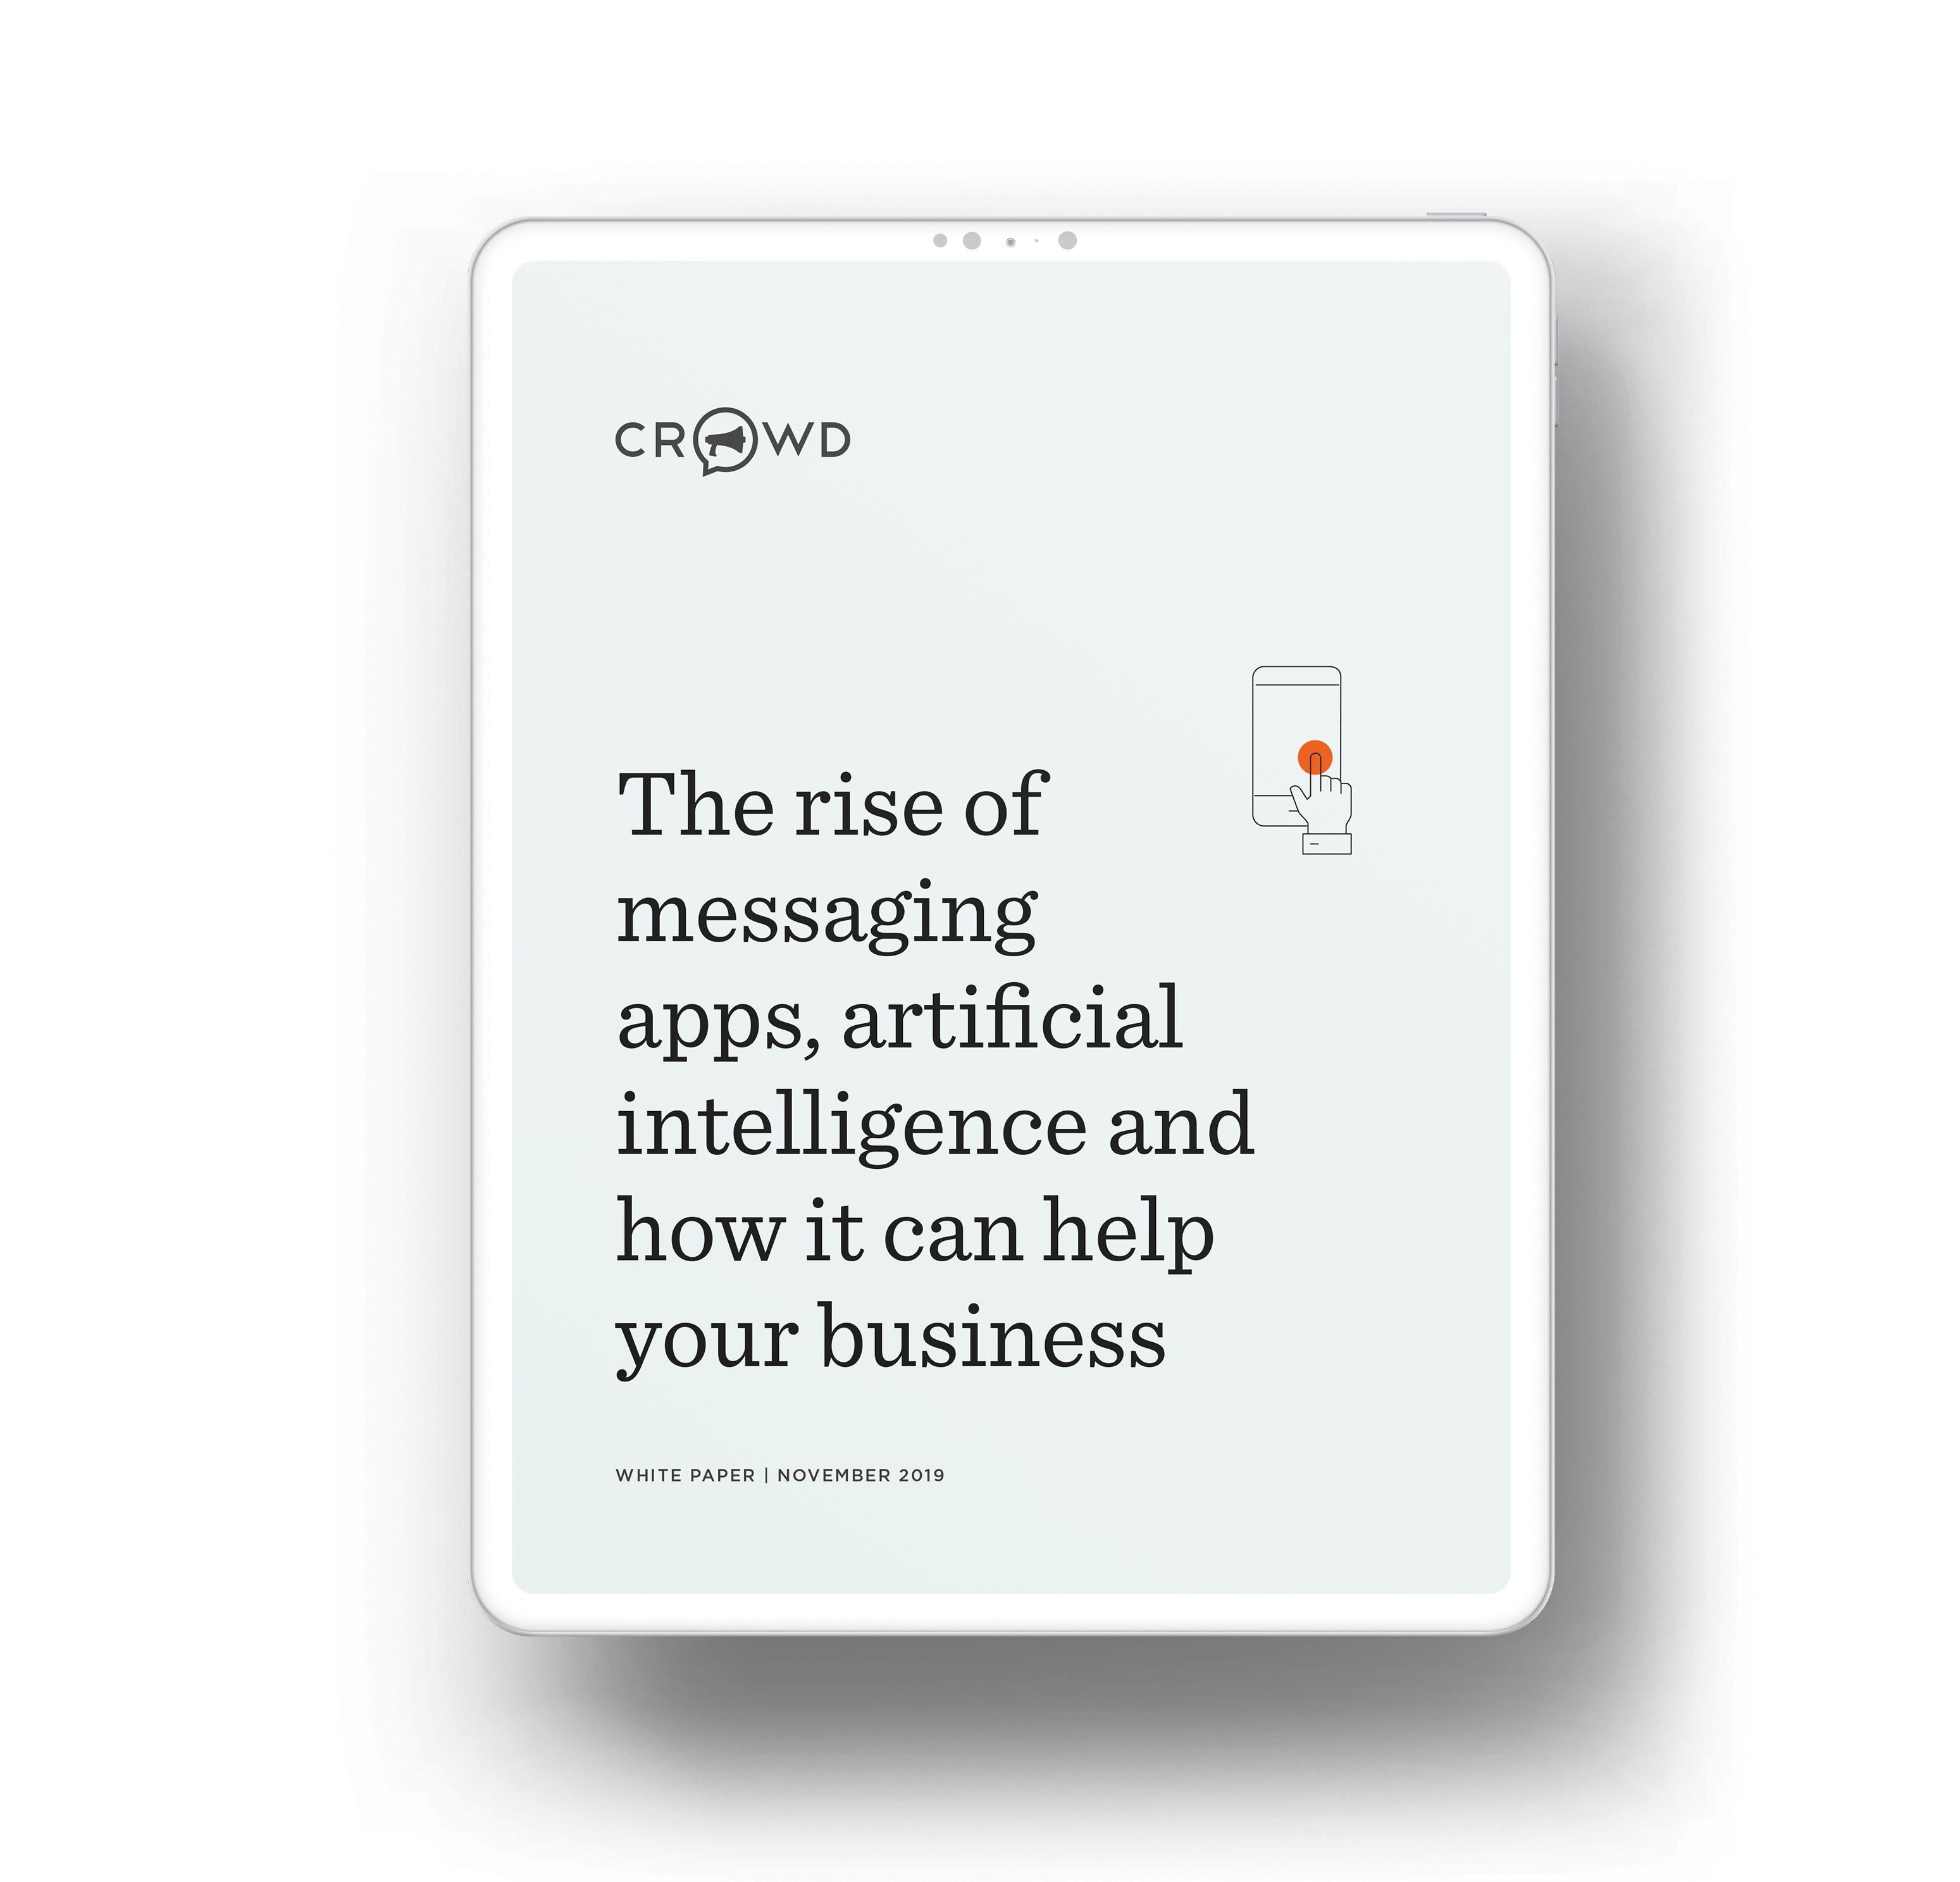 The rise of messaging apps, artificial intelligence and how it can help your business